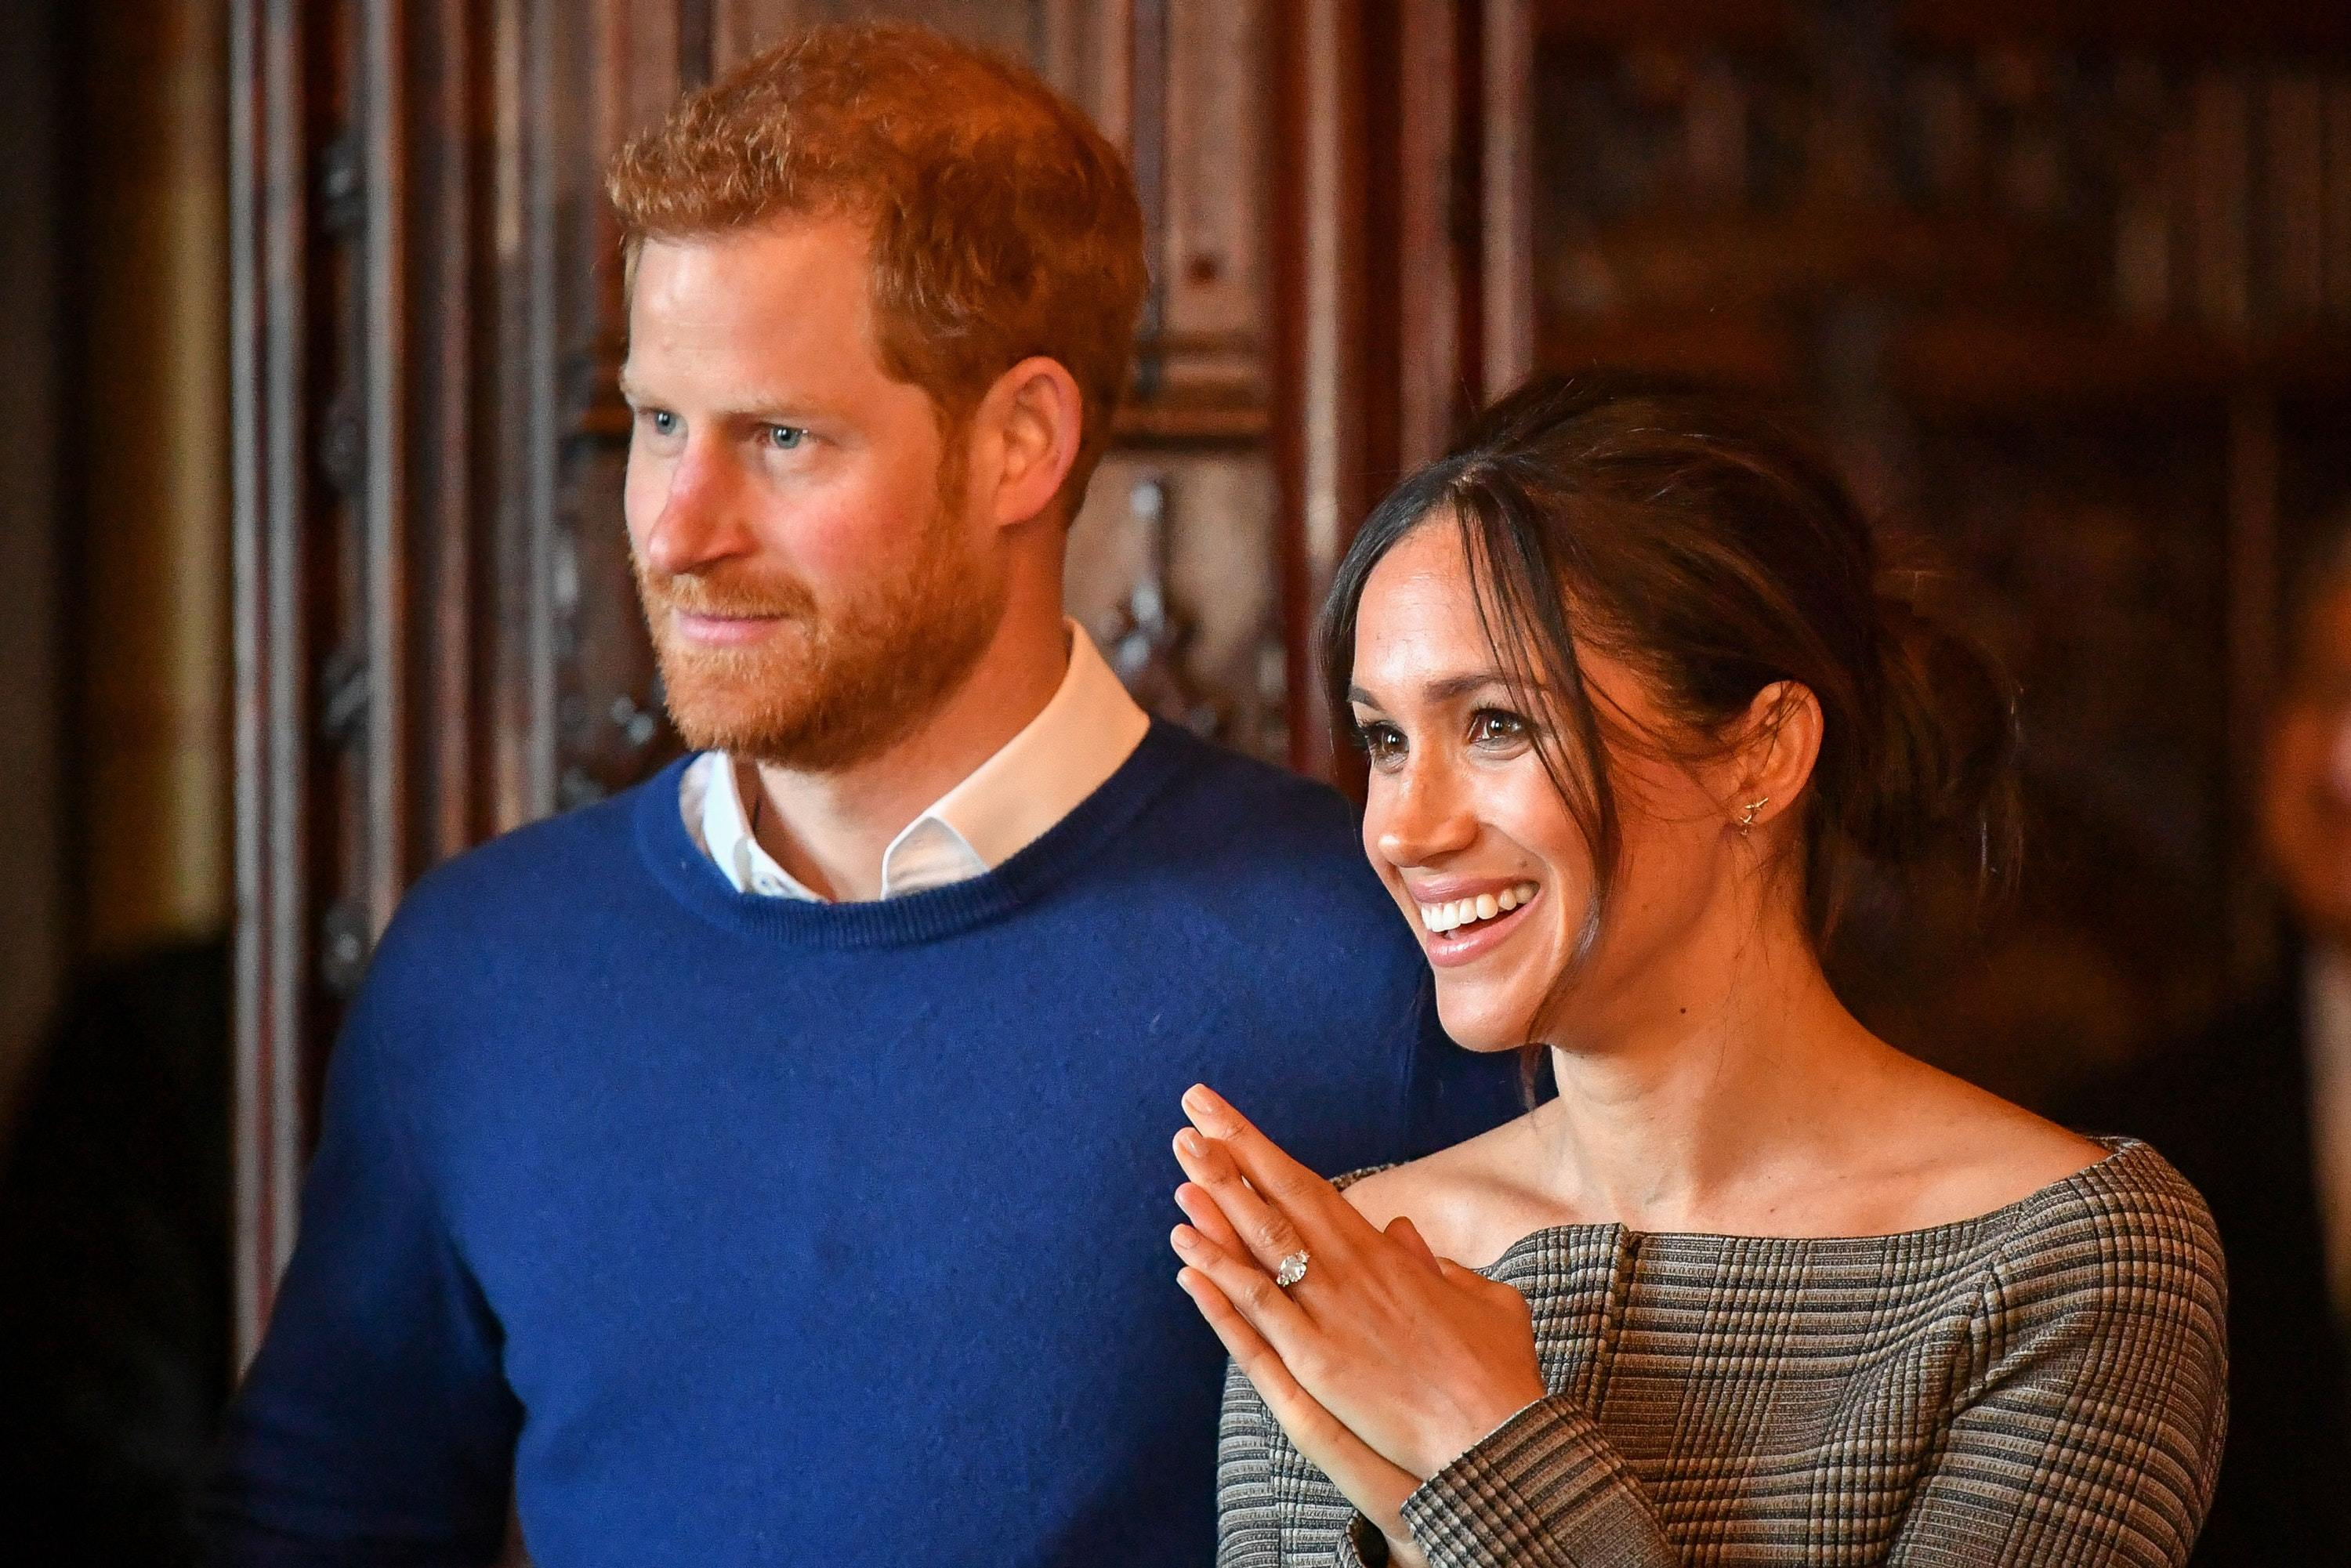 Prince Harry and Meghan Markle, pictured during their recent Cardiff visit, will tour Edinburgh together for the first time. (Ben Birchall/PA)